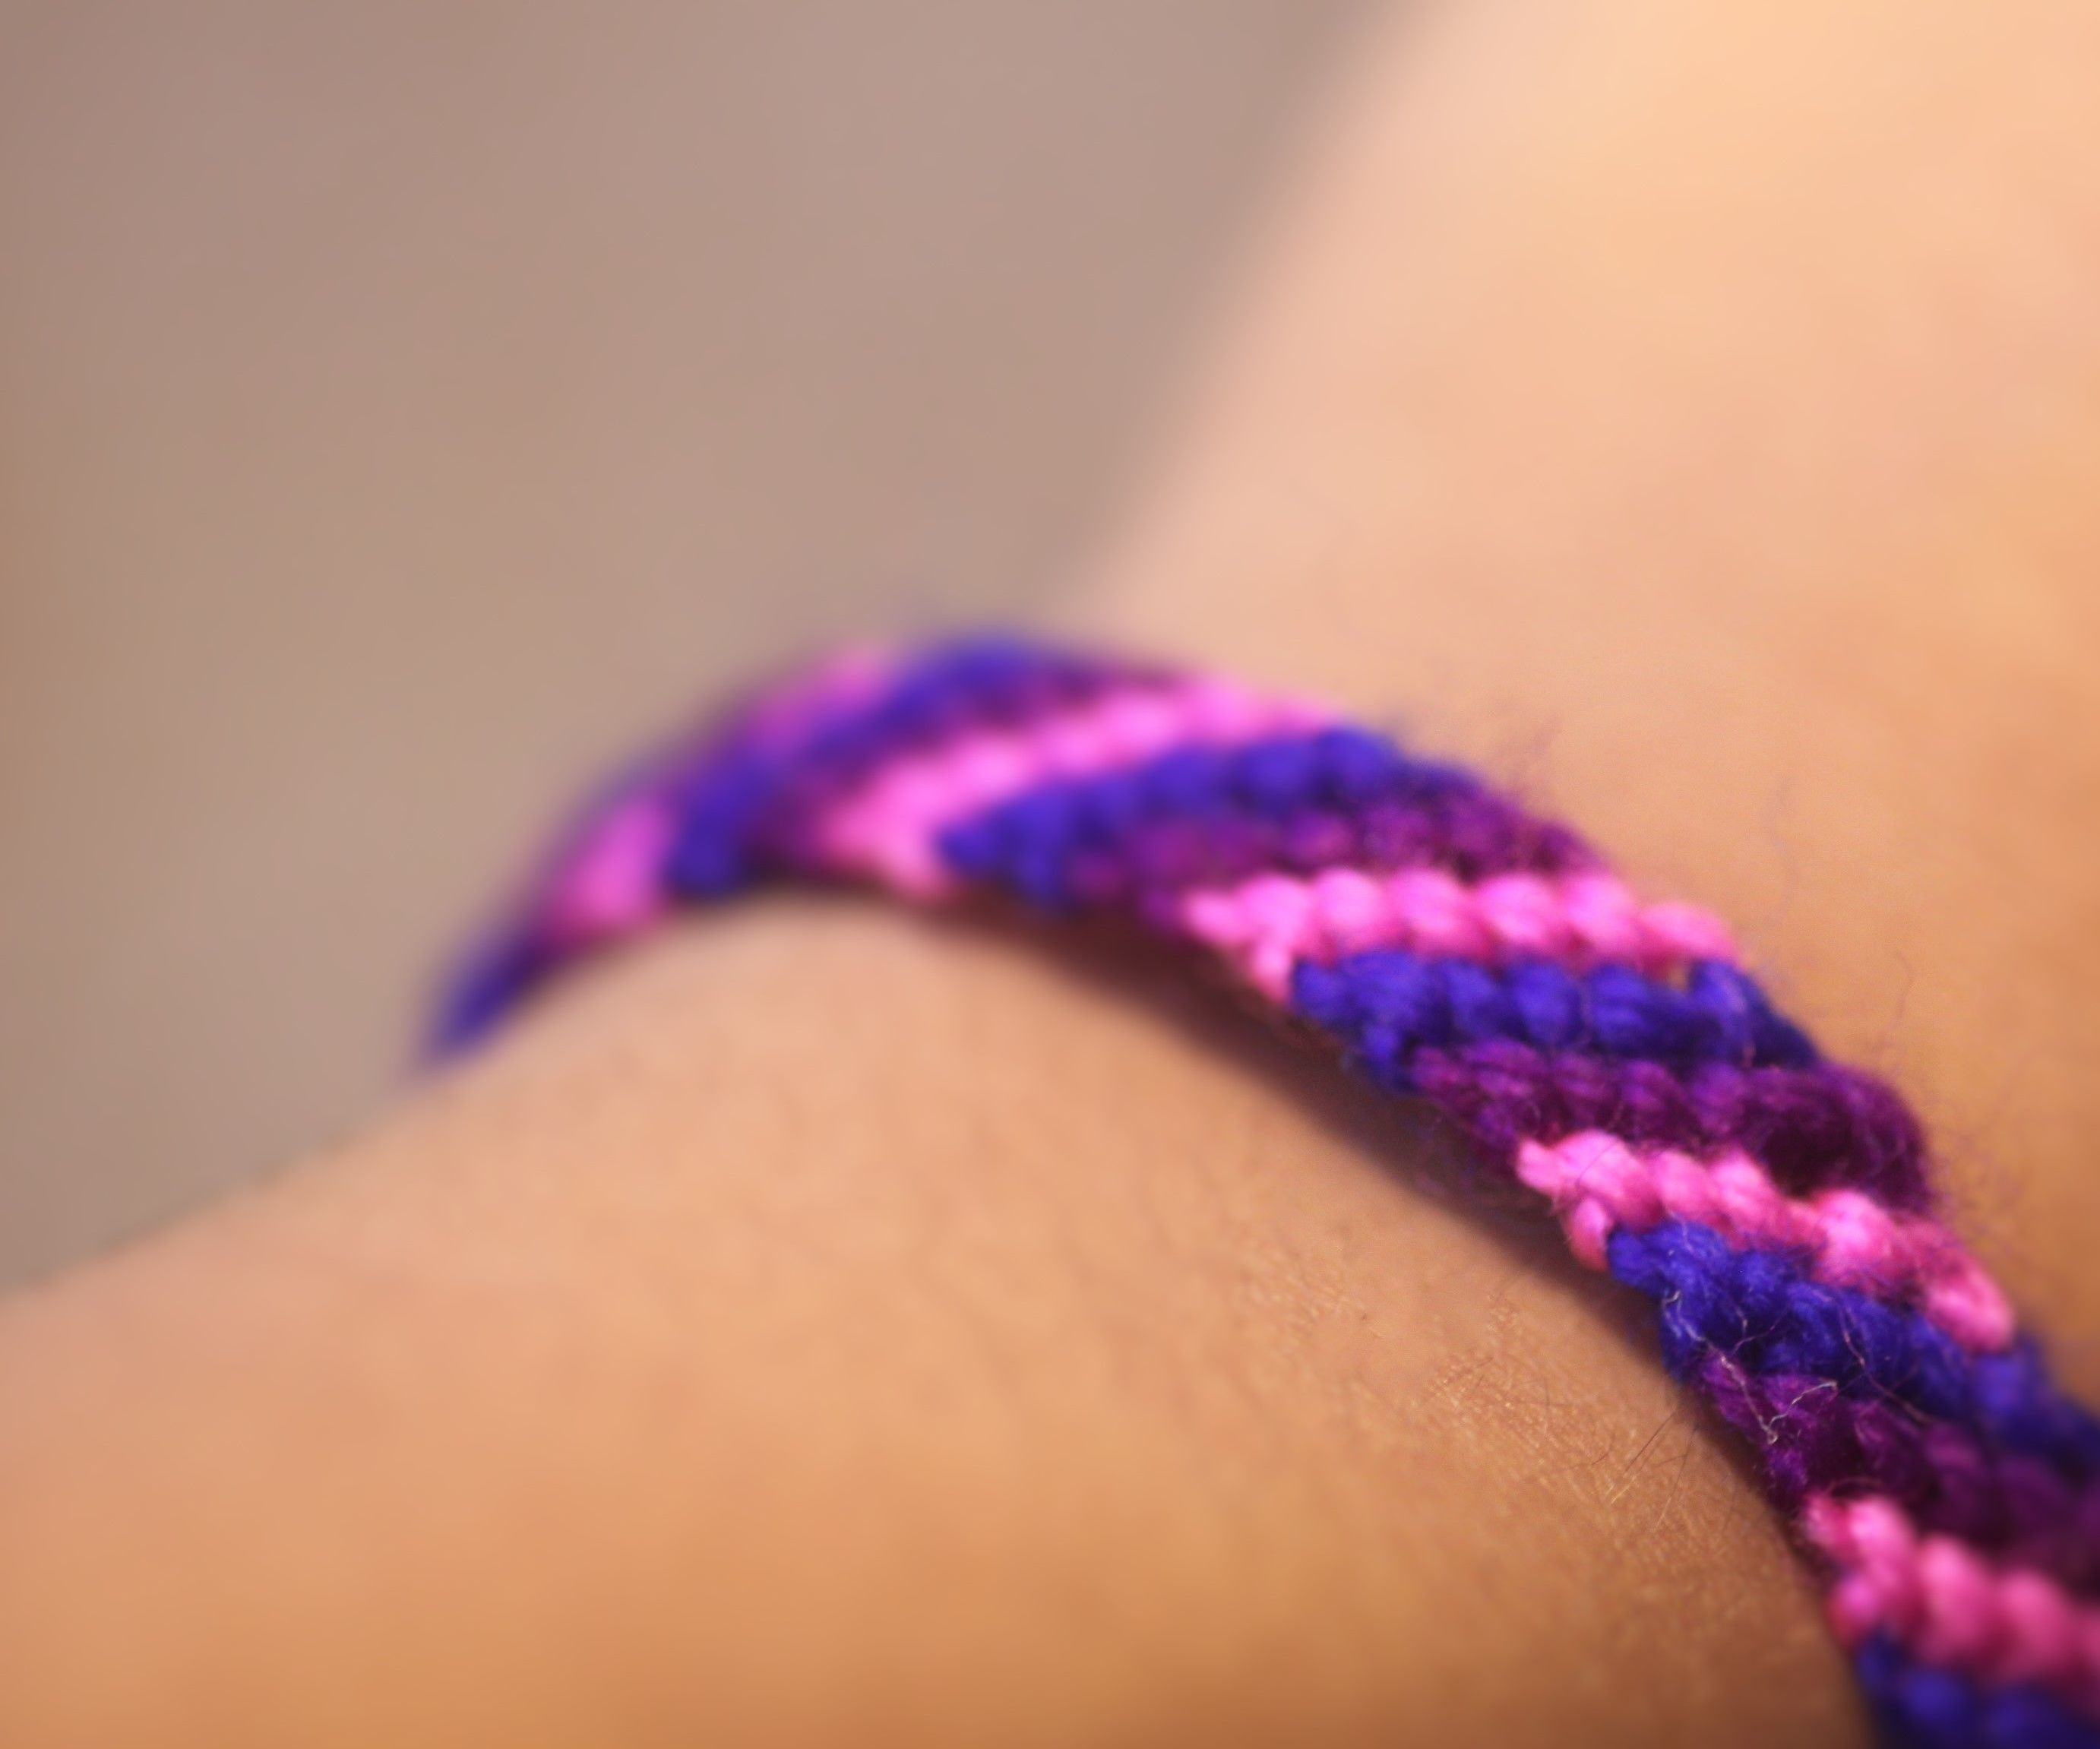 How to make Bracelets Using Yarn